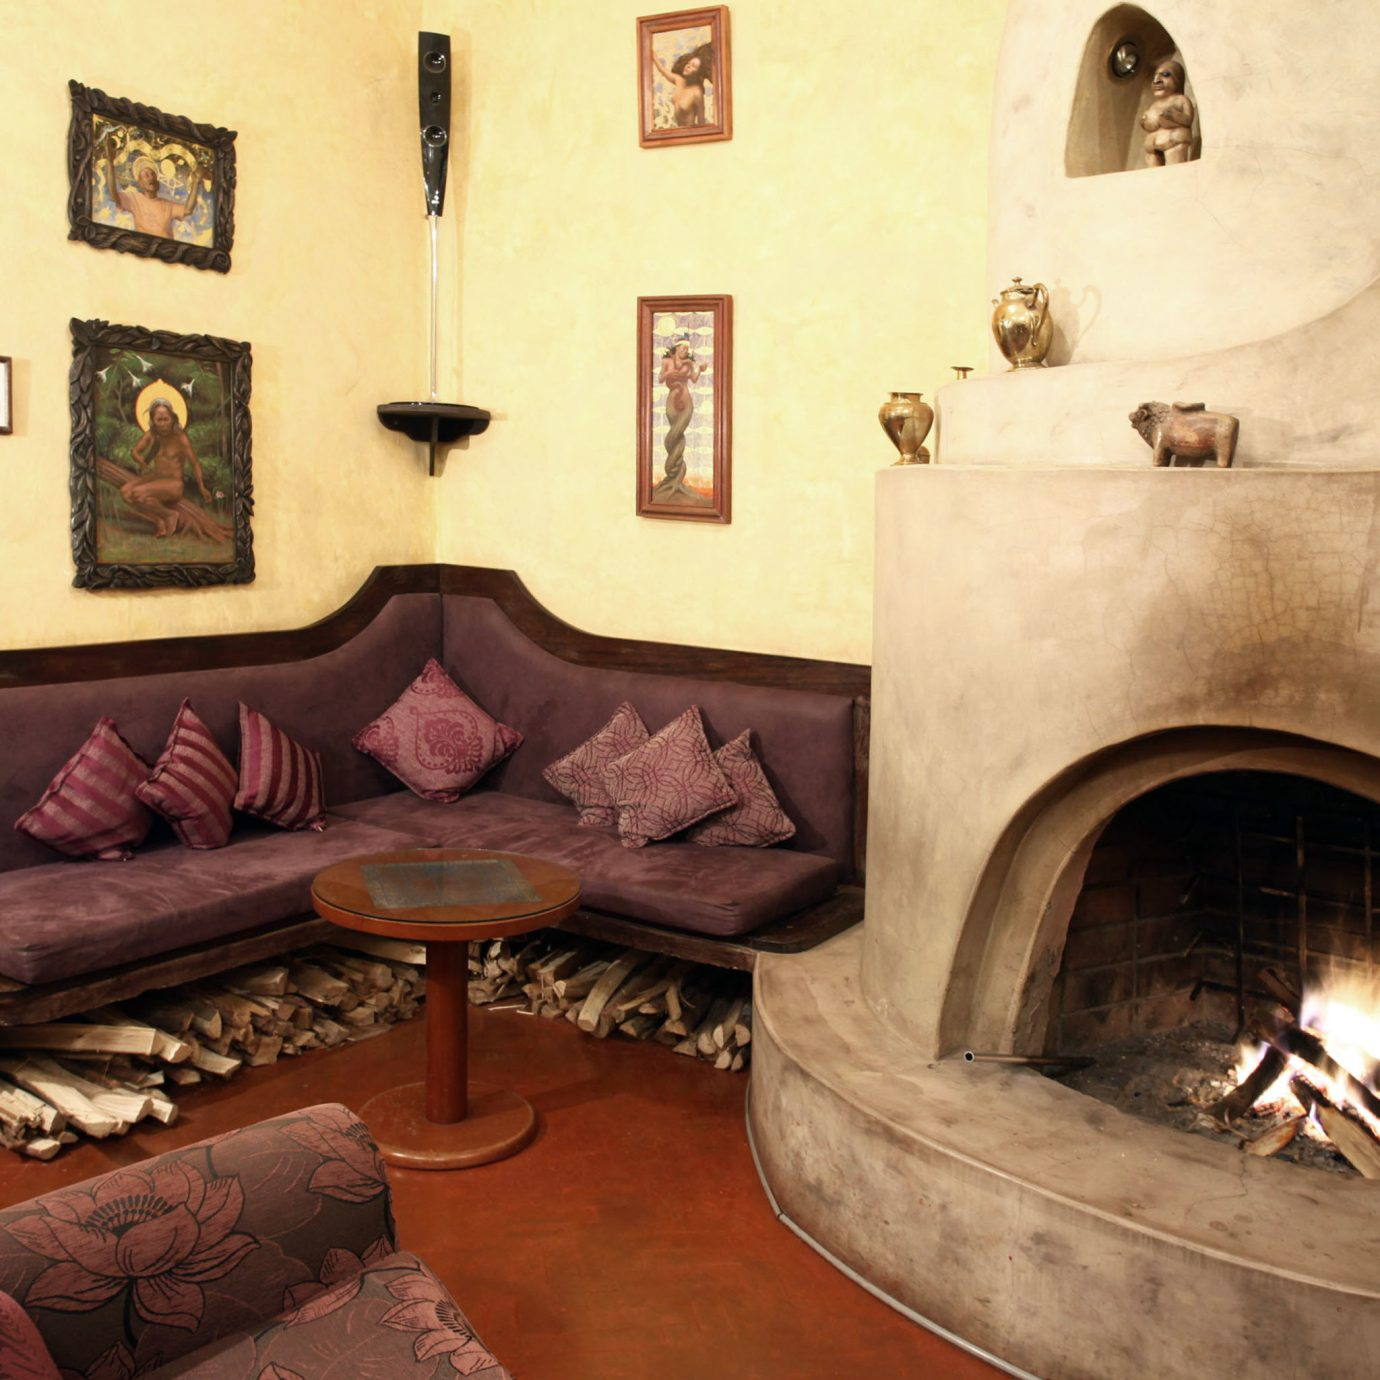 Boutique Fireplace fire house living room home ancient history stone